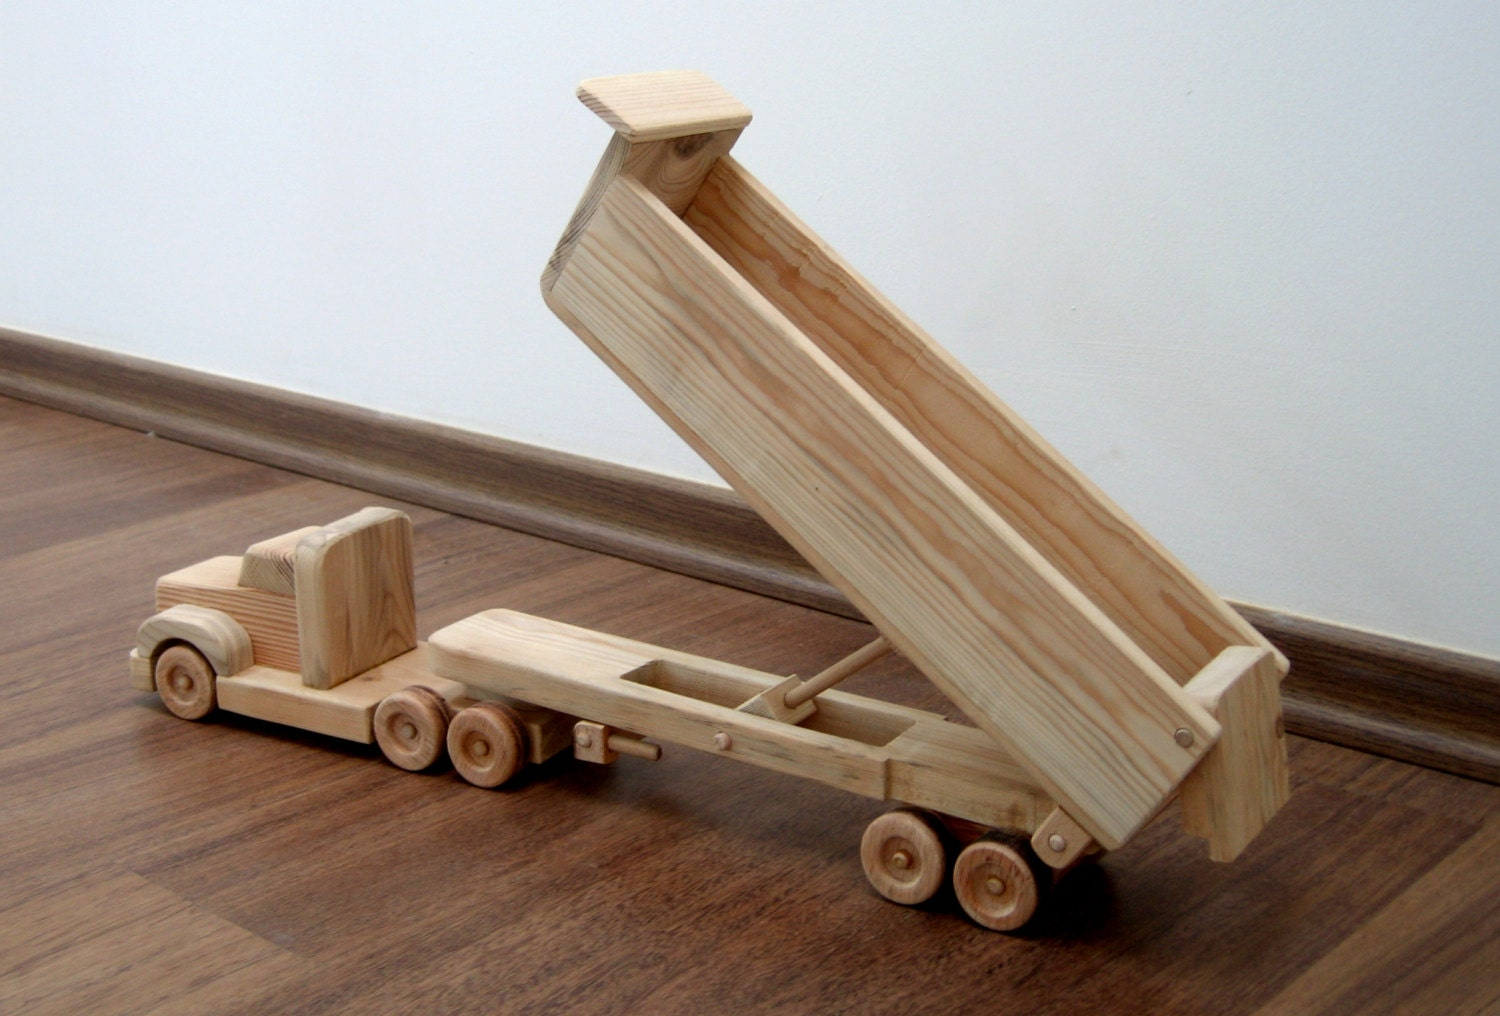 ... Your Own Wooden Toy Train Secret Woodworking Plans - 1500x1016 - jpeg